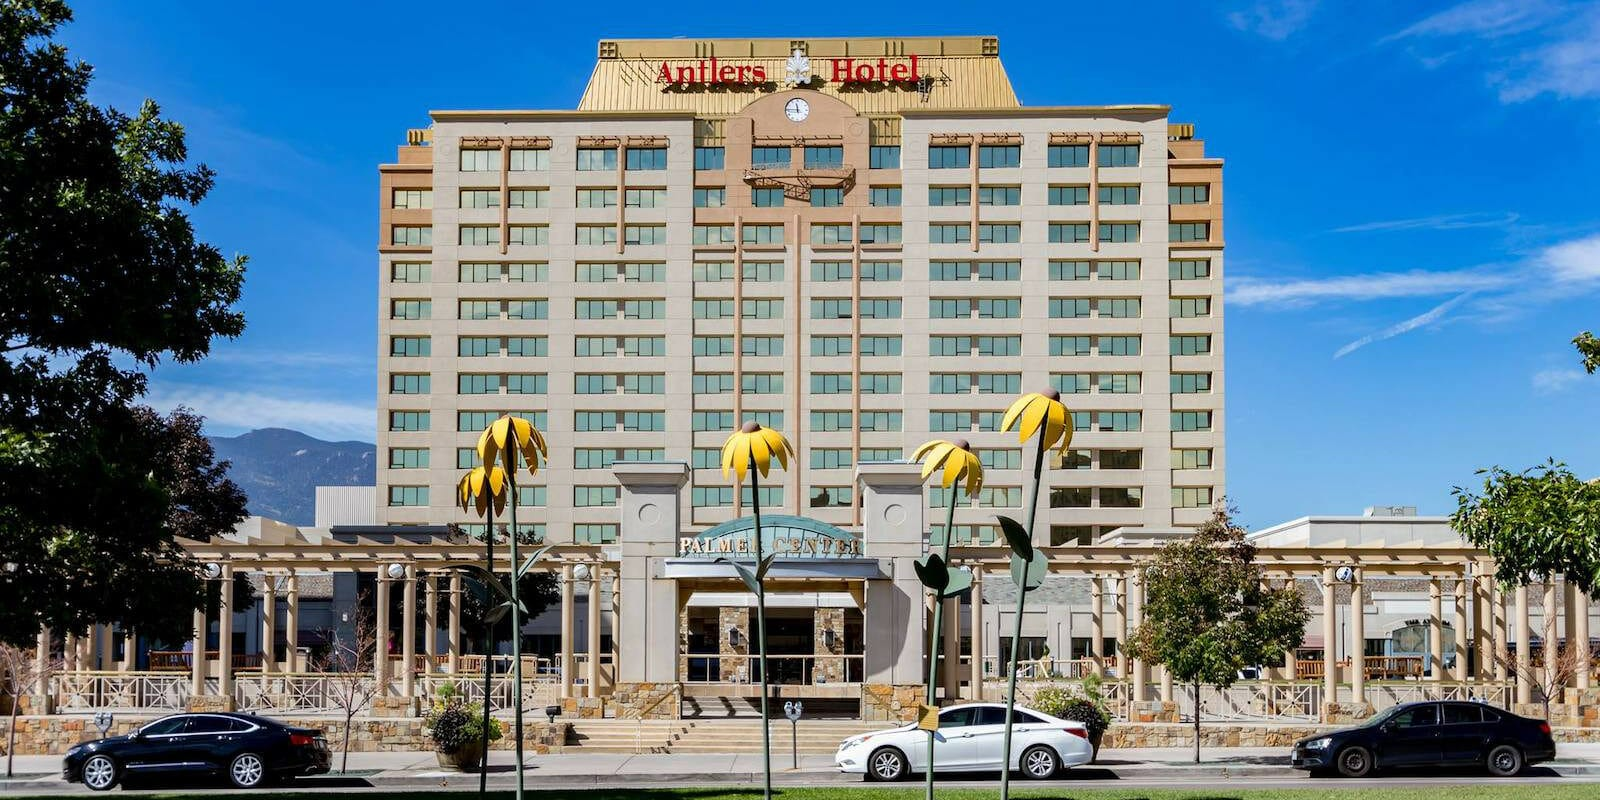 Image of The Antlers, A Wyndham Hotel in Colorado Springs